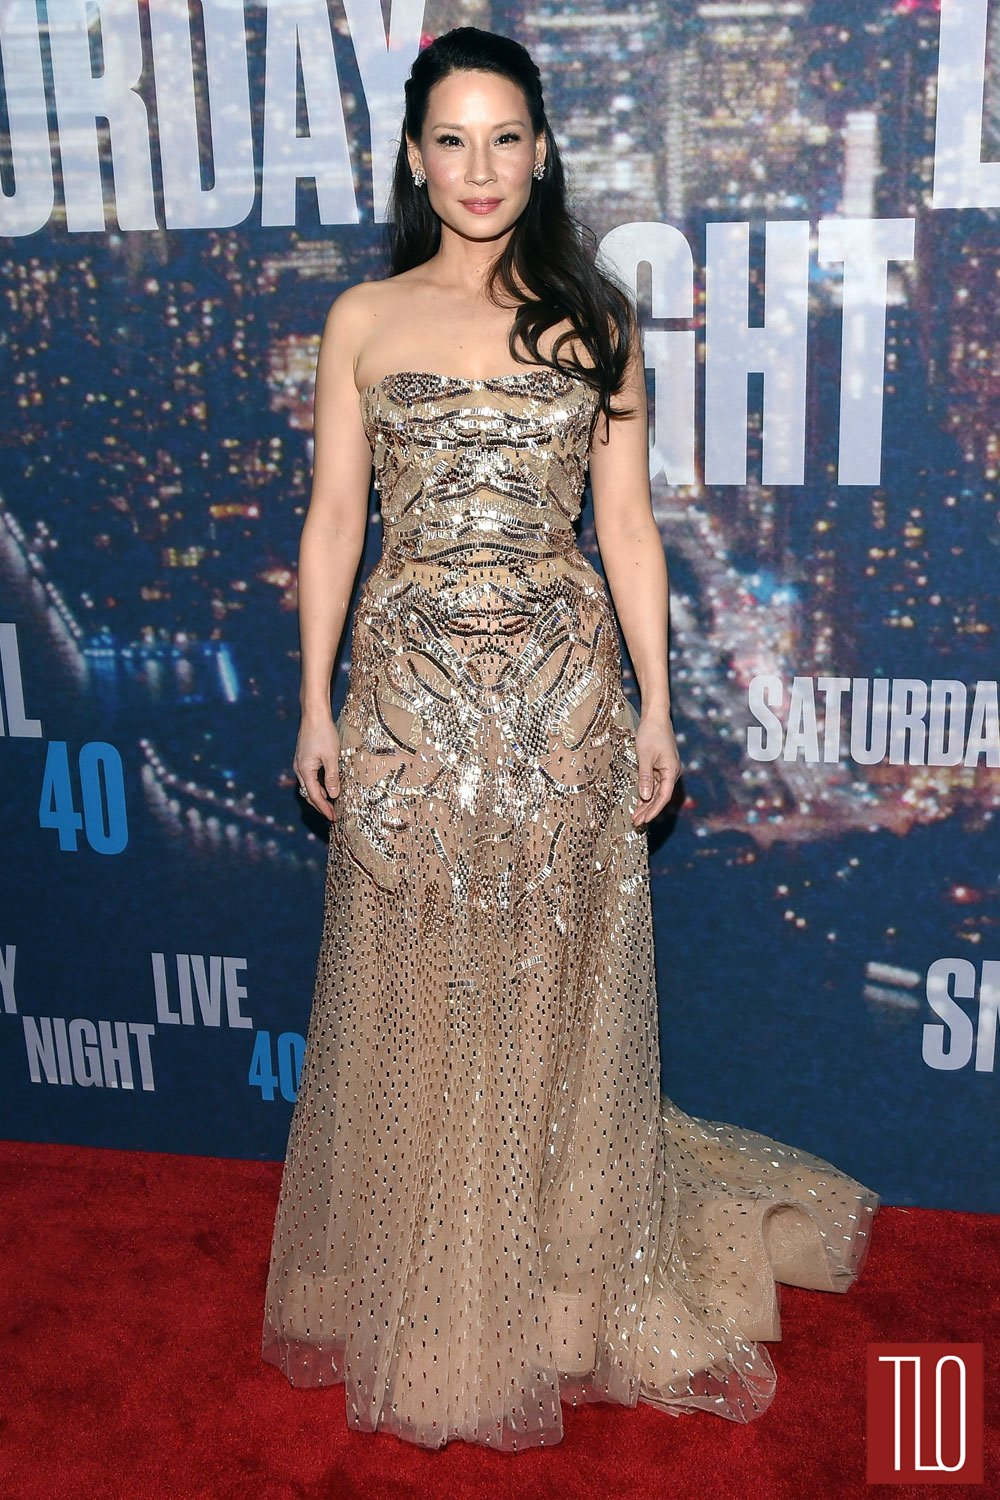 Lucy-Liu-SNL-40th-Anniversary-Celebration-Red-Carpet-Fashion-Zuhair-Murad-Couture-Fall-2015-Collection-Tom-Lorenzo-SIte-TLO (1)